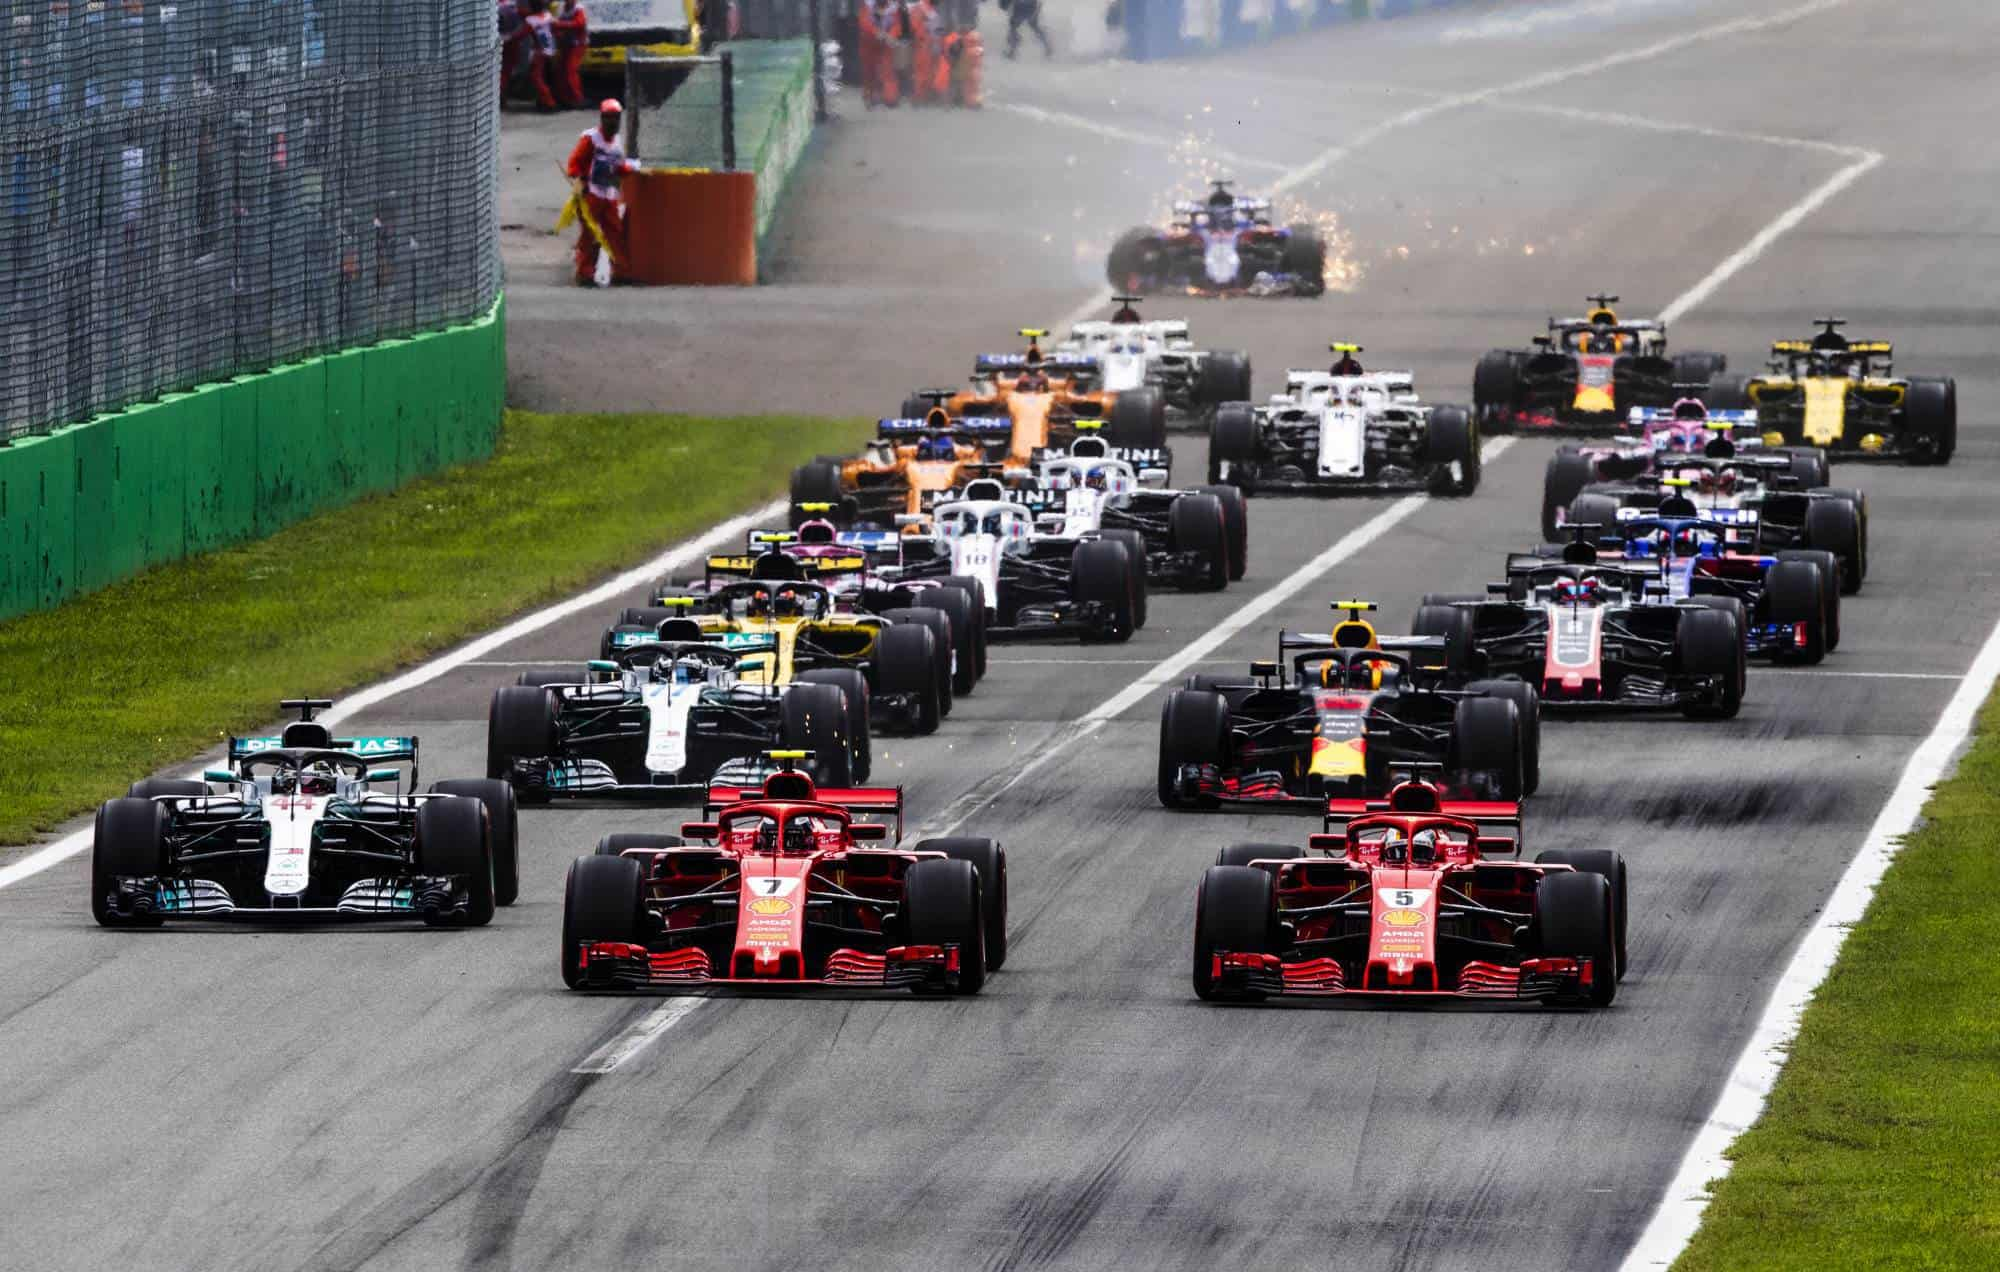 Italian GP F1 2018 start Monza Photo Ferrari